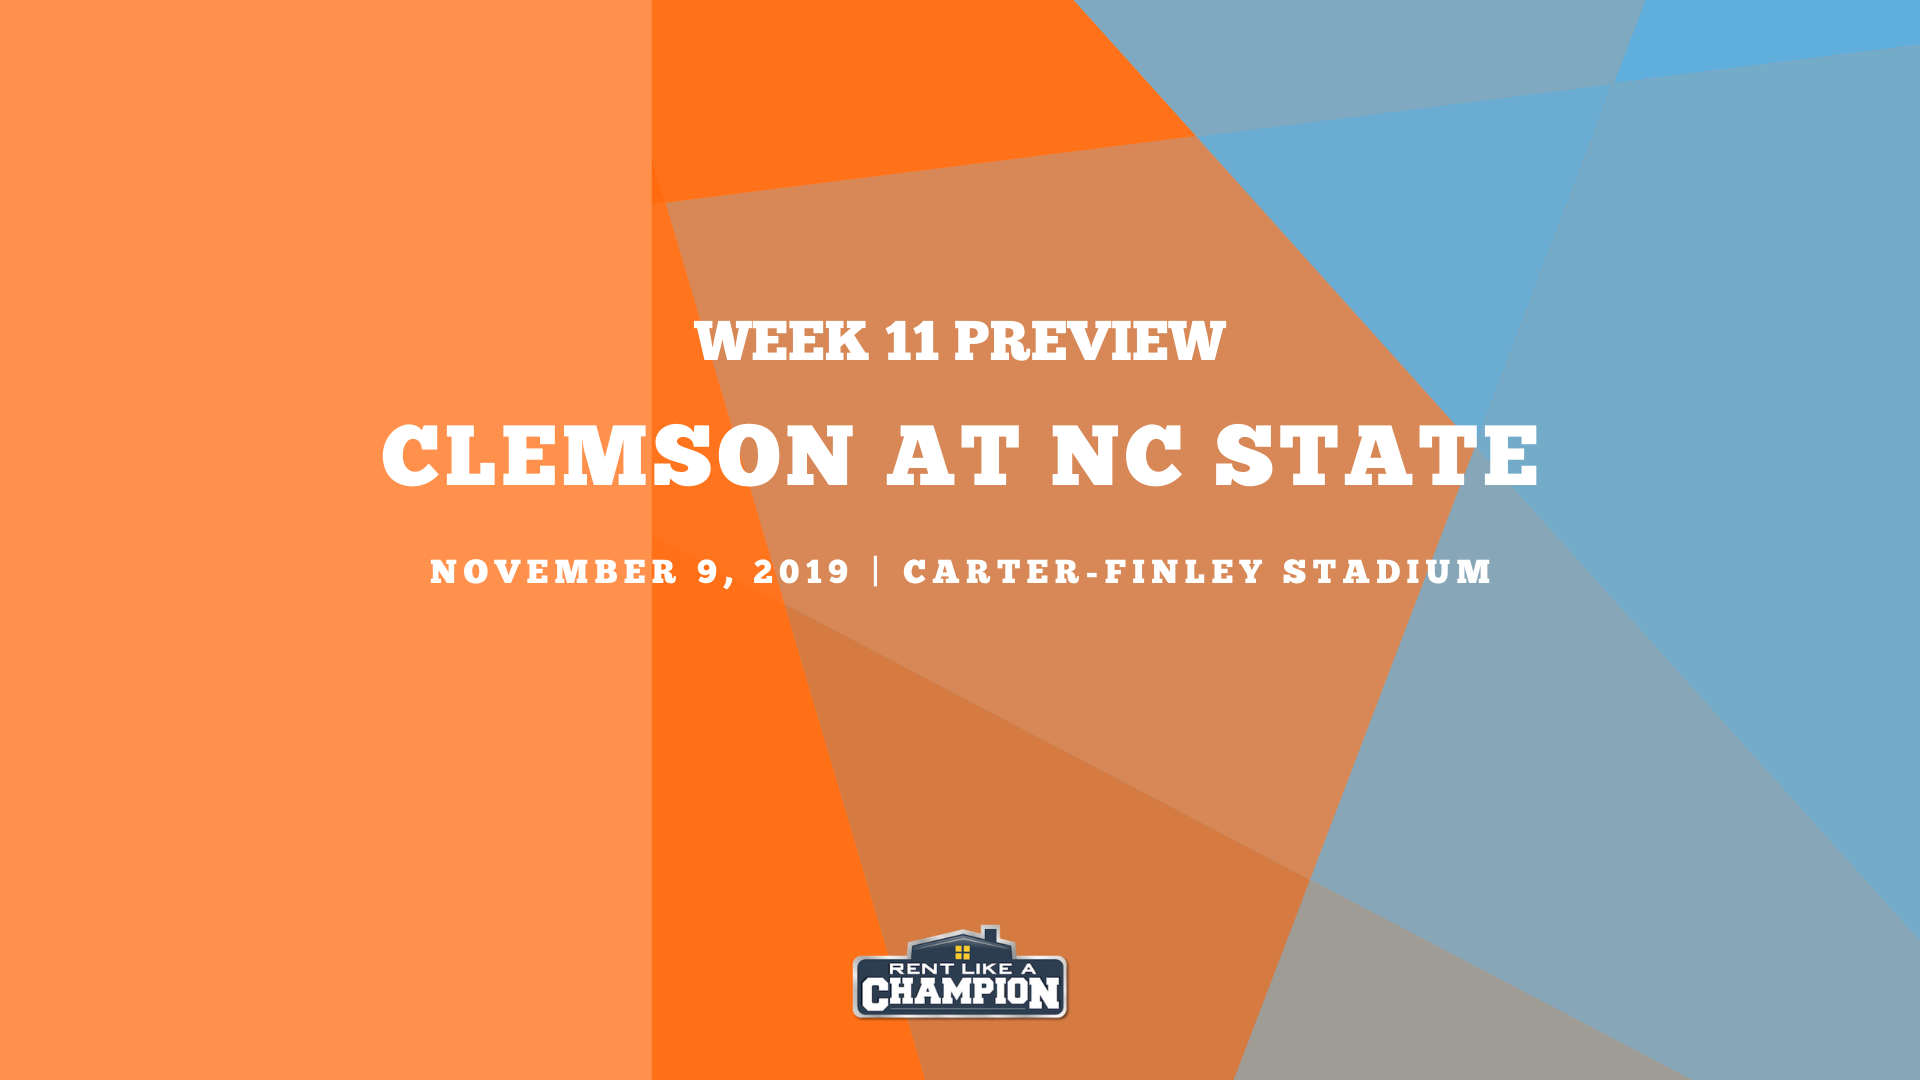 Clemson Game Preview Template (4)